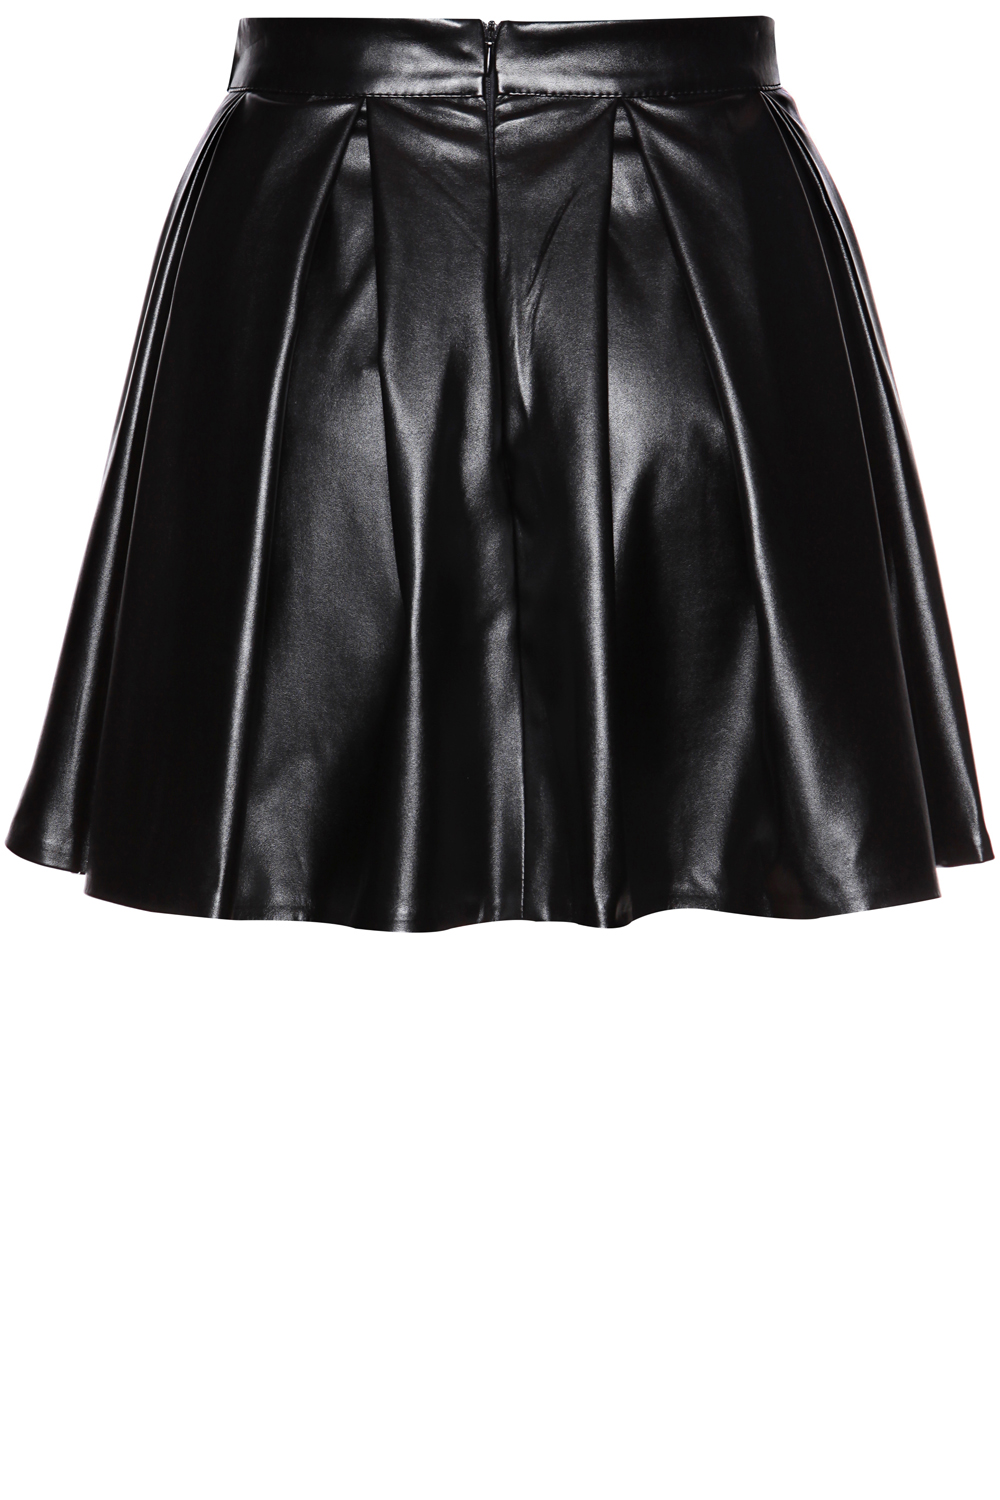 black leather pleated skirt with back seam zip fastening